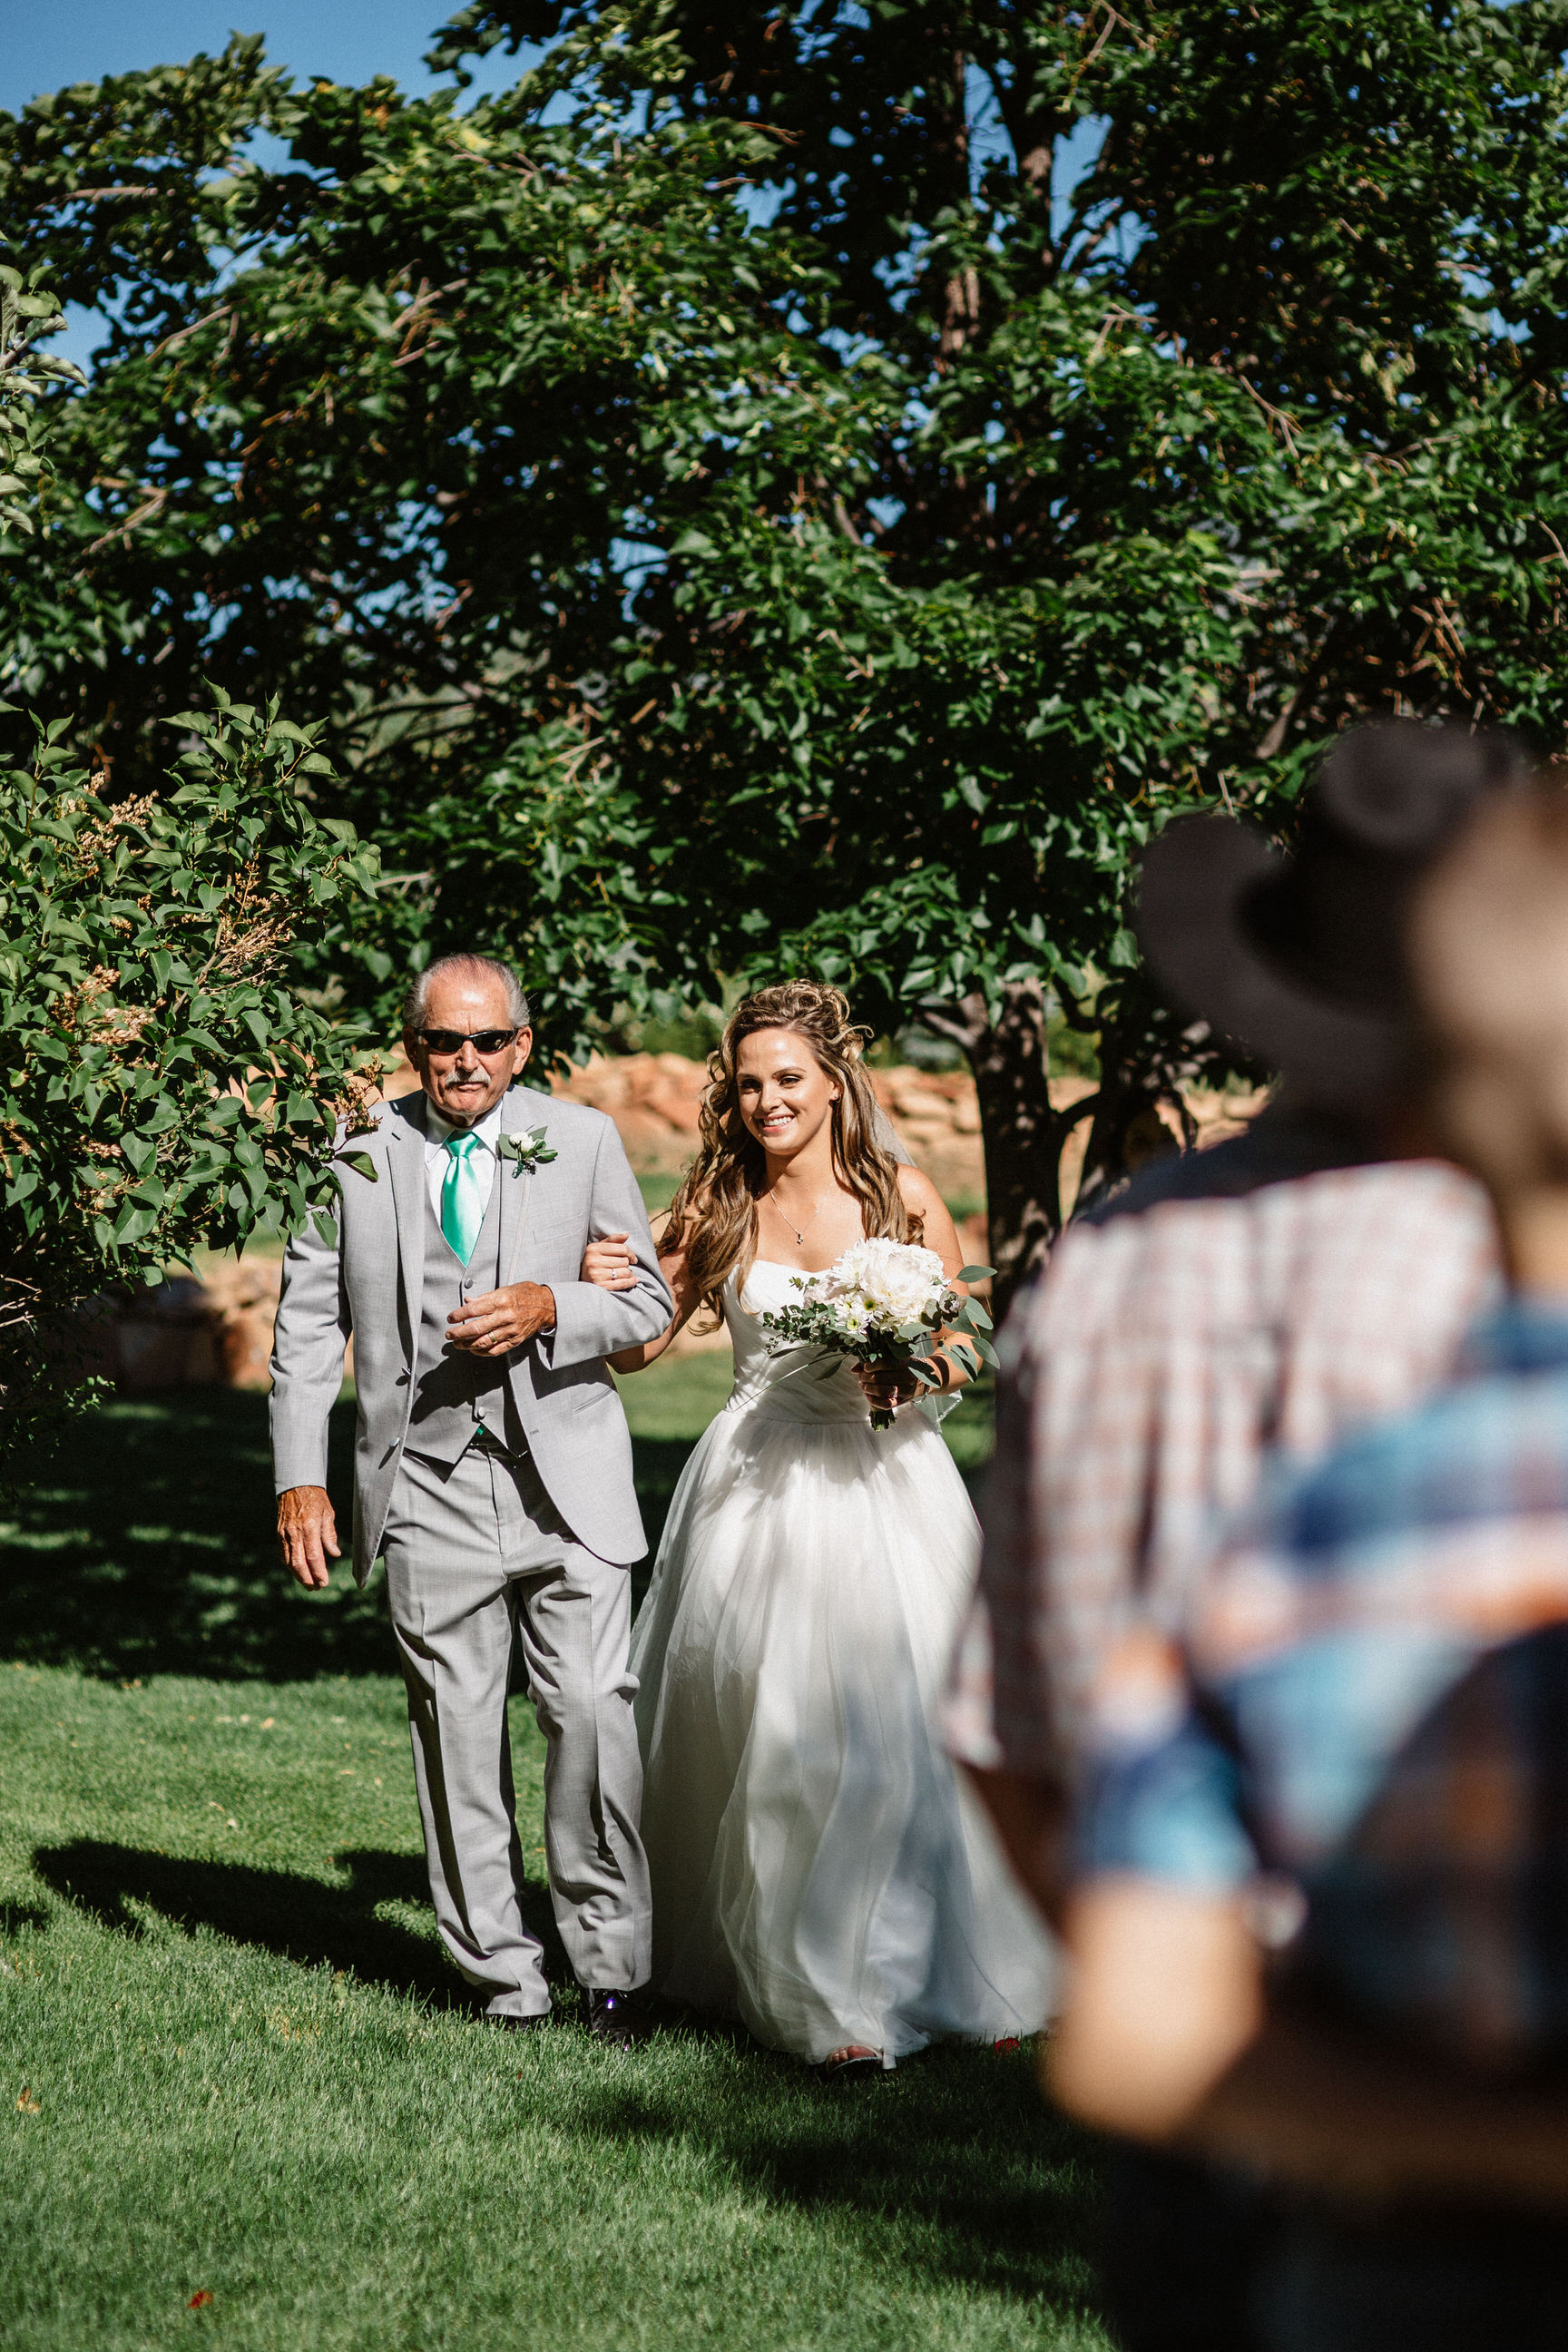 backyard wedding Heber City Utah destination wedding portland oregon photography0055.JPG